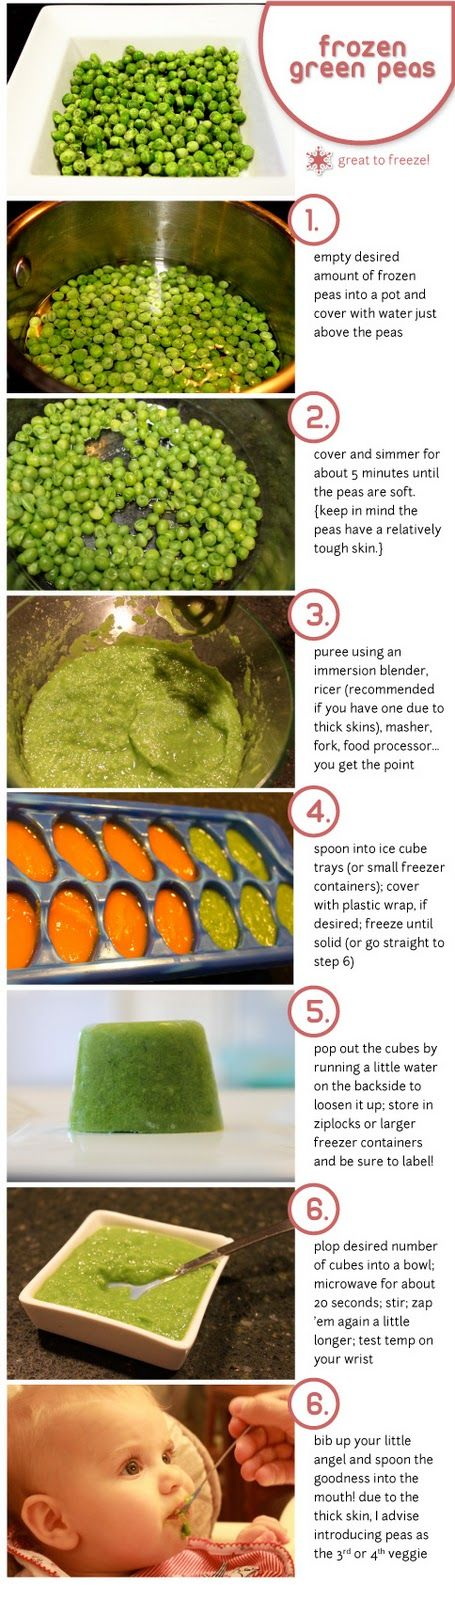 How to make your own homemade baby food, plus tips for introducing solids to your baby